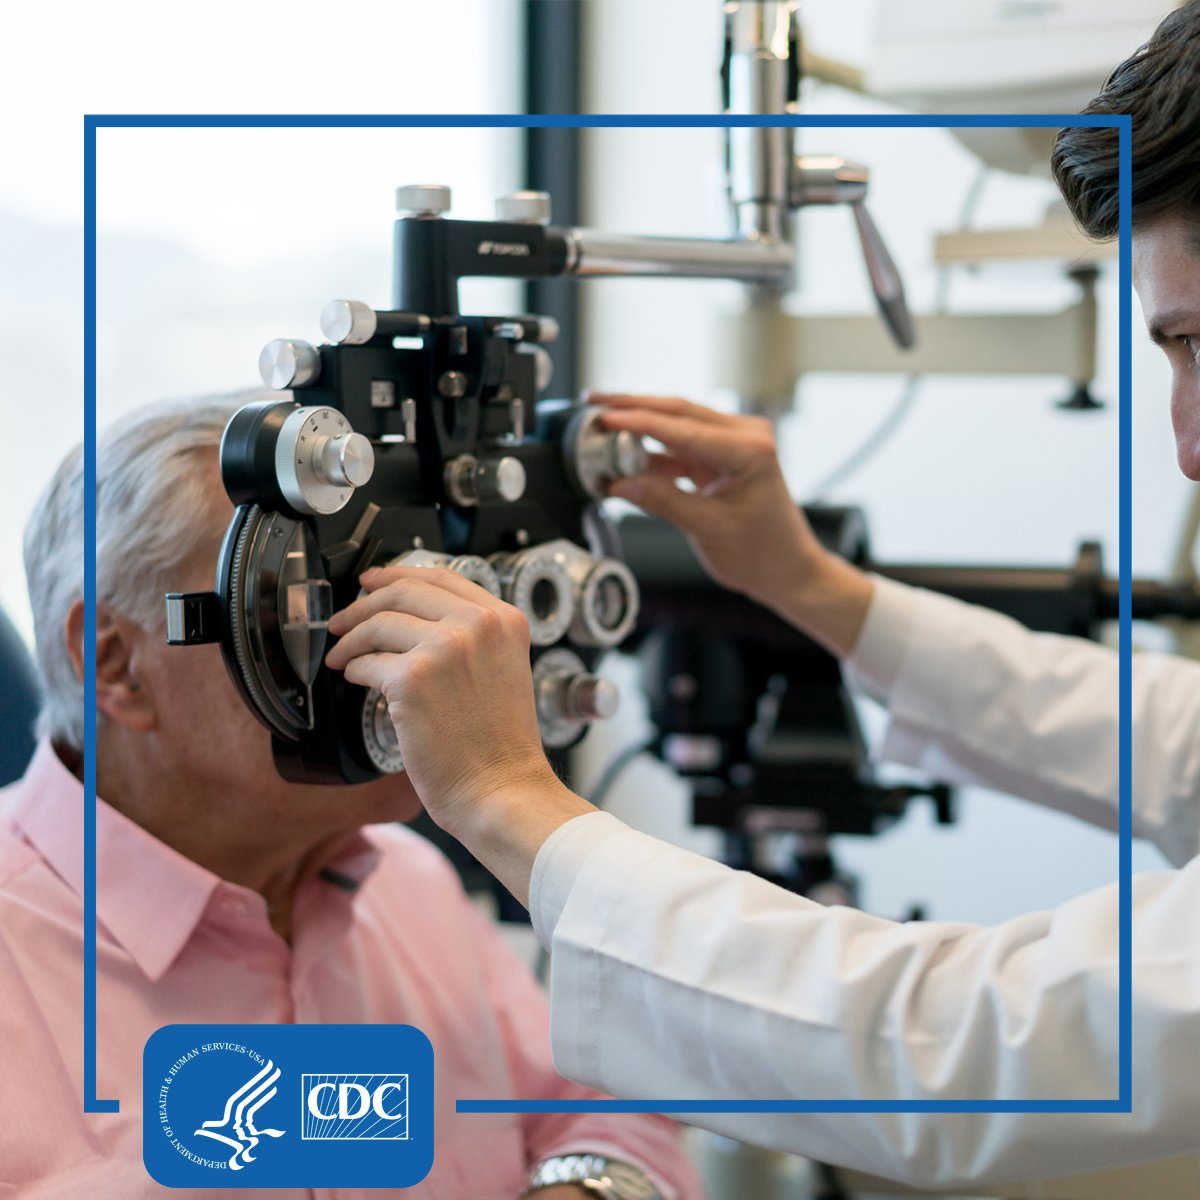 #DYK: People with #diabetes should get an eye exam every year! Here's why: https://bit.ly/2zEqn8G